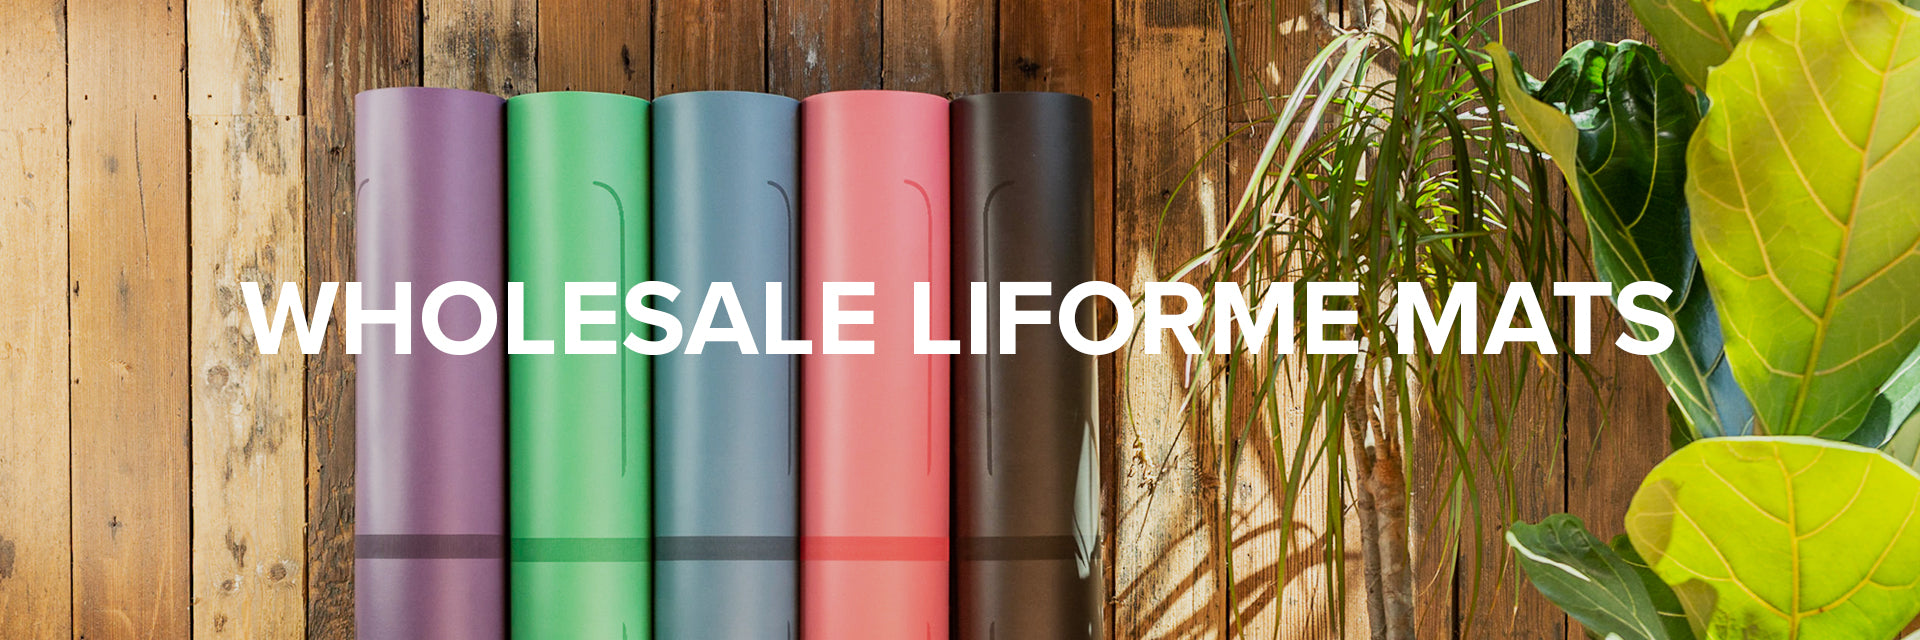 Wholesale Liforme Mats